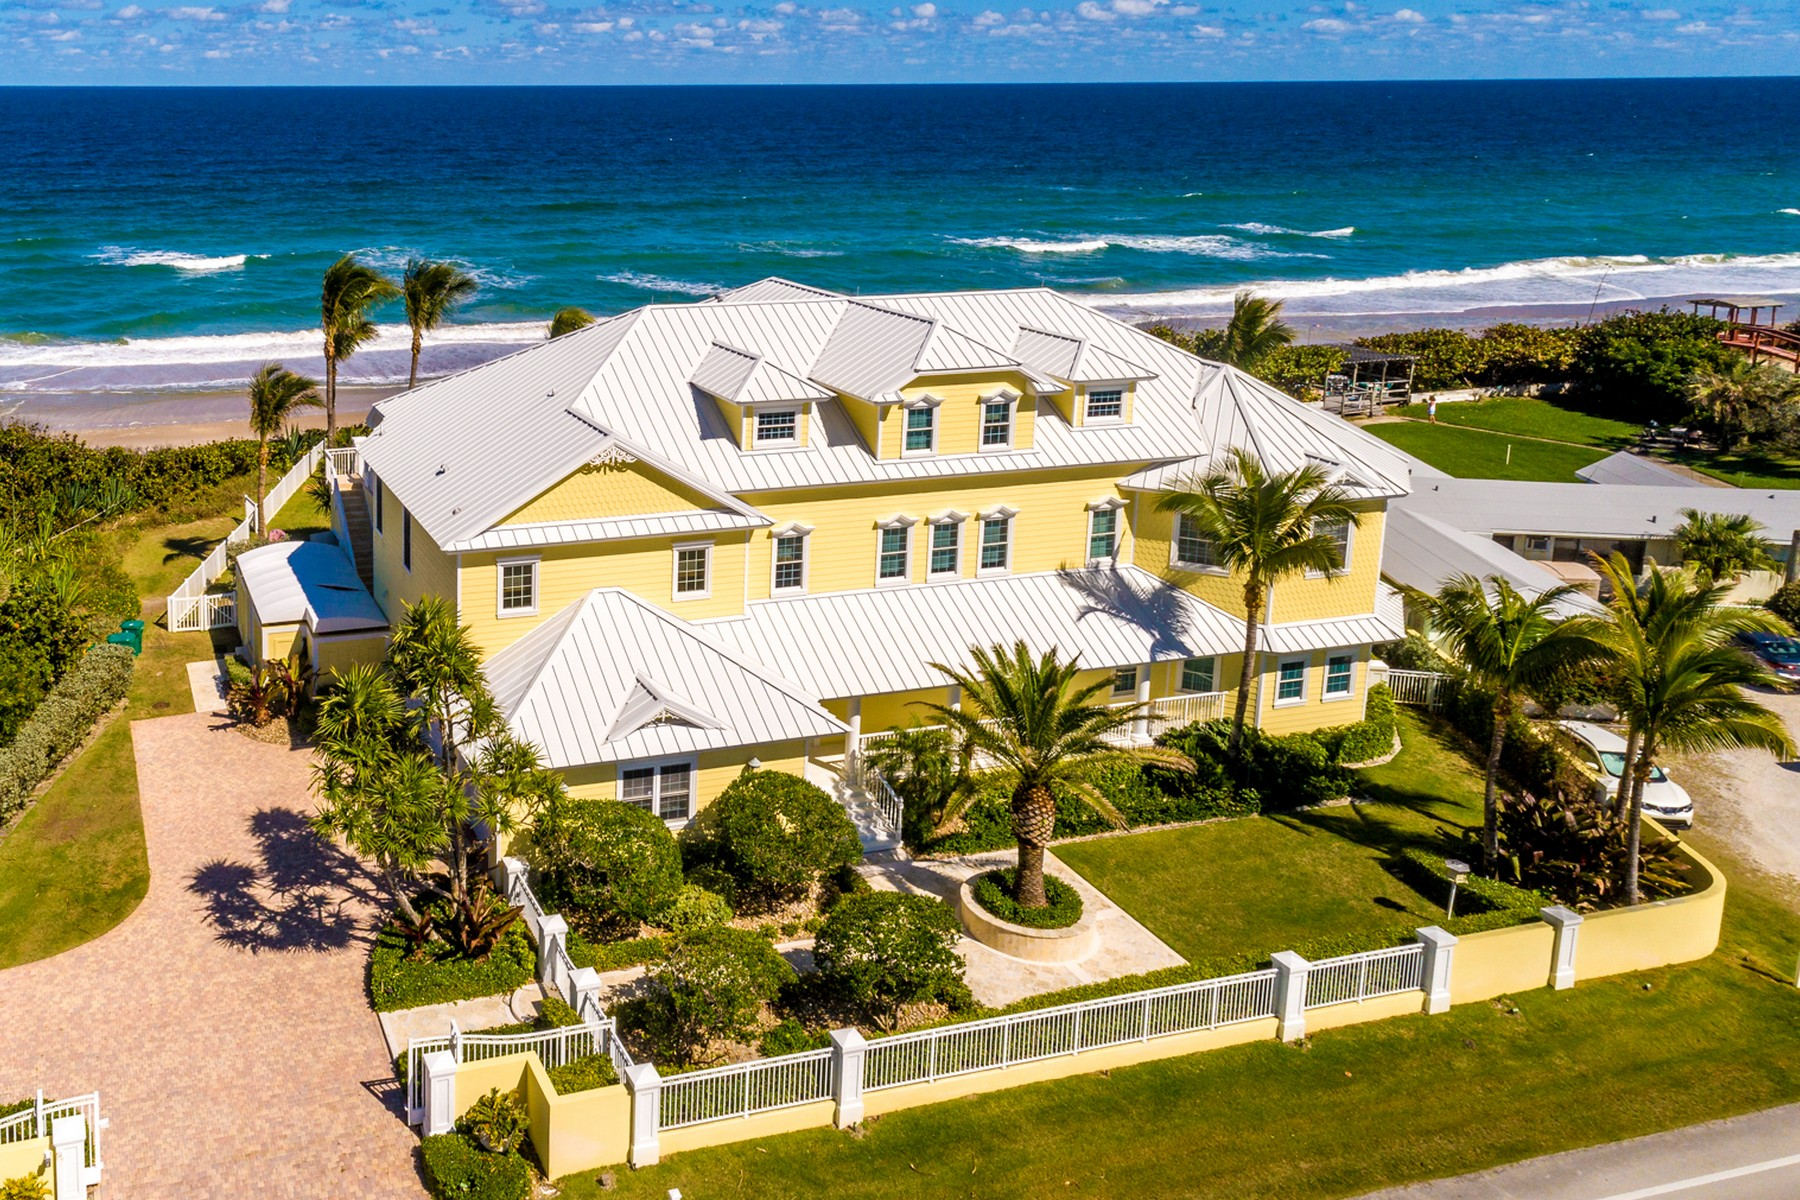 Property for Sale at Gorgeous Tropically Landscaped Home with Endless Ocean Vistas 5045 S Highway A1A Melbourne Beach, Florida 32951 United States